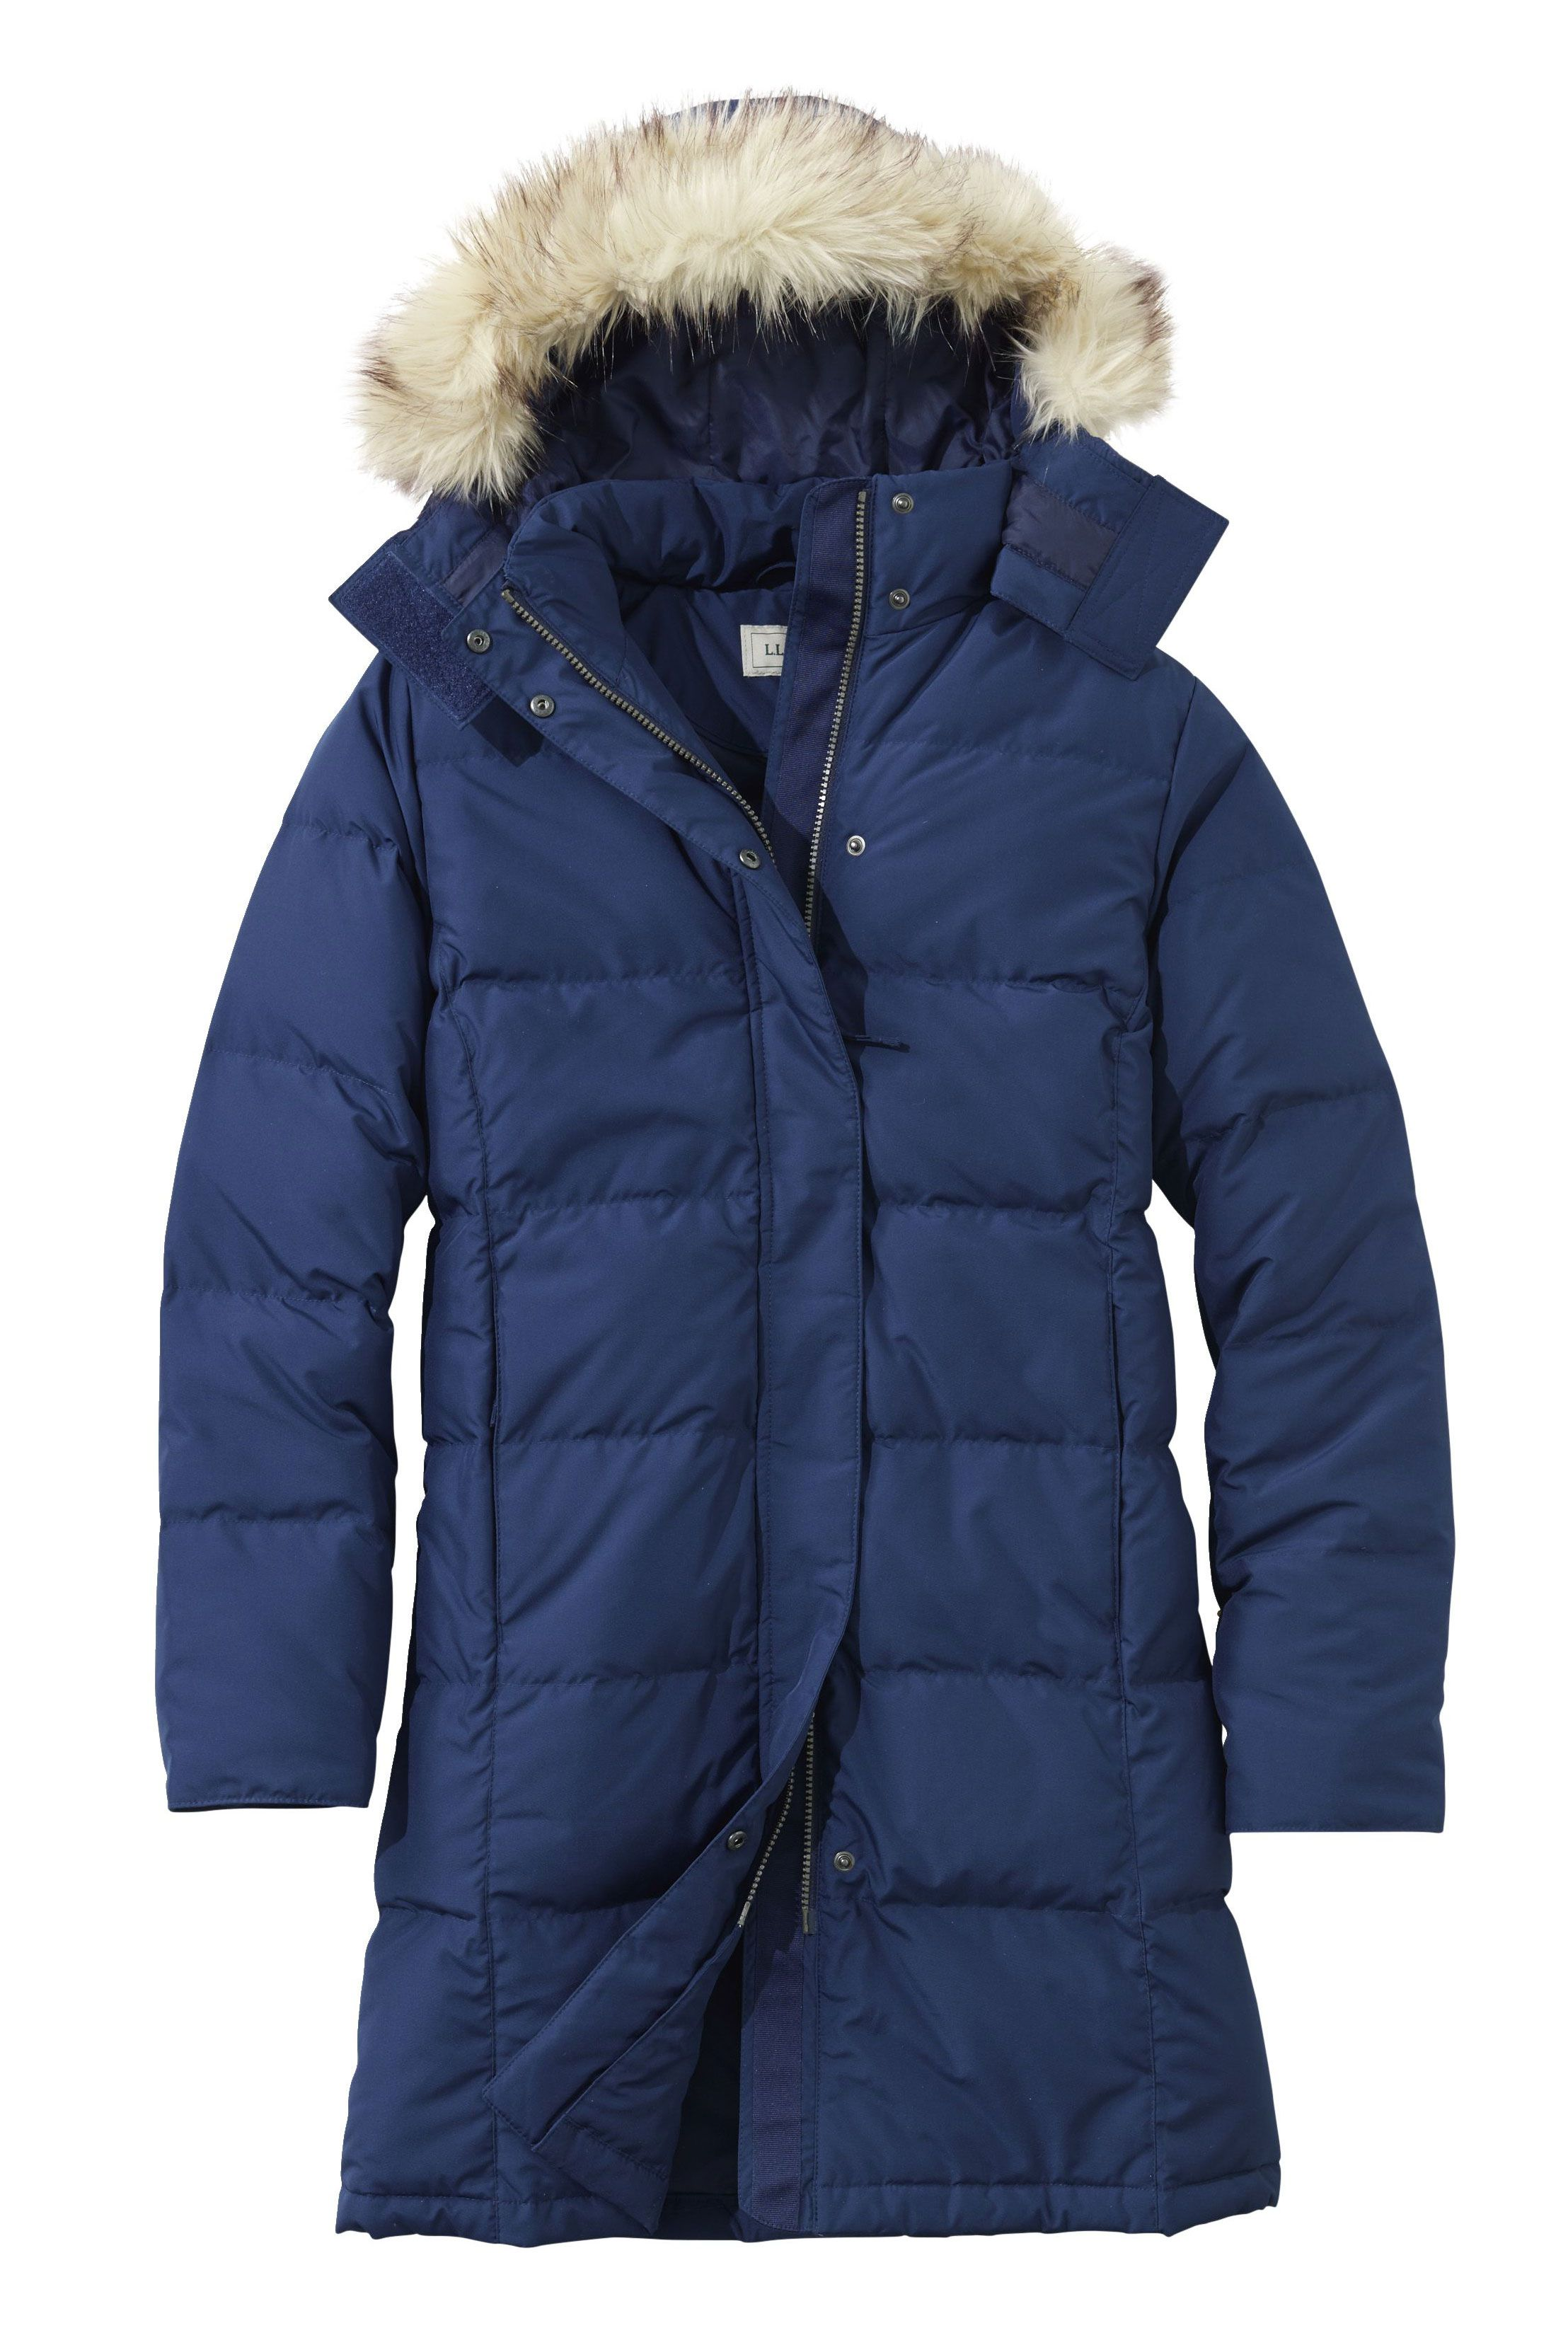 9 verified LL Bean coupons and promo codes as of Dec 2. Popular now: Outdoor Gear on Sale. Plus free shipping.. Trust spanarpatri.ml for Clothing savings%().